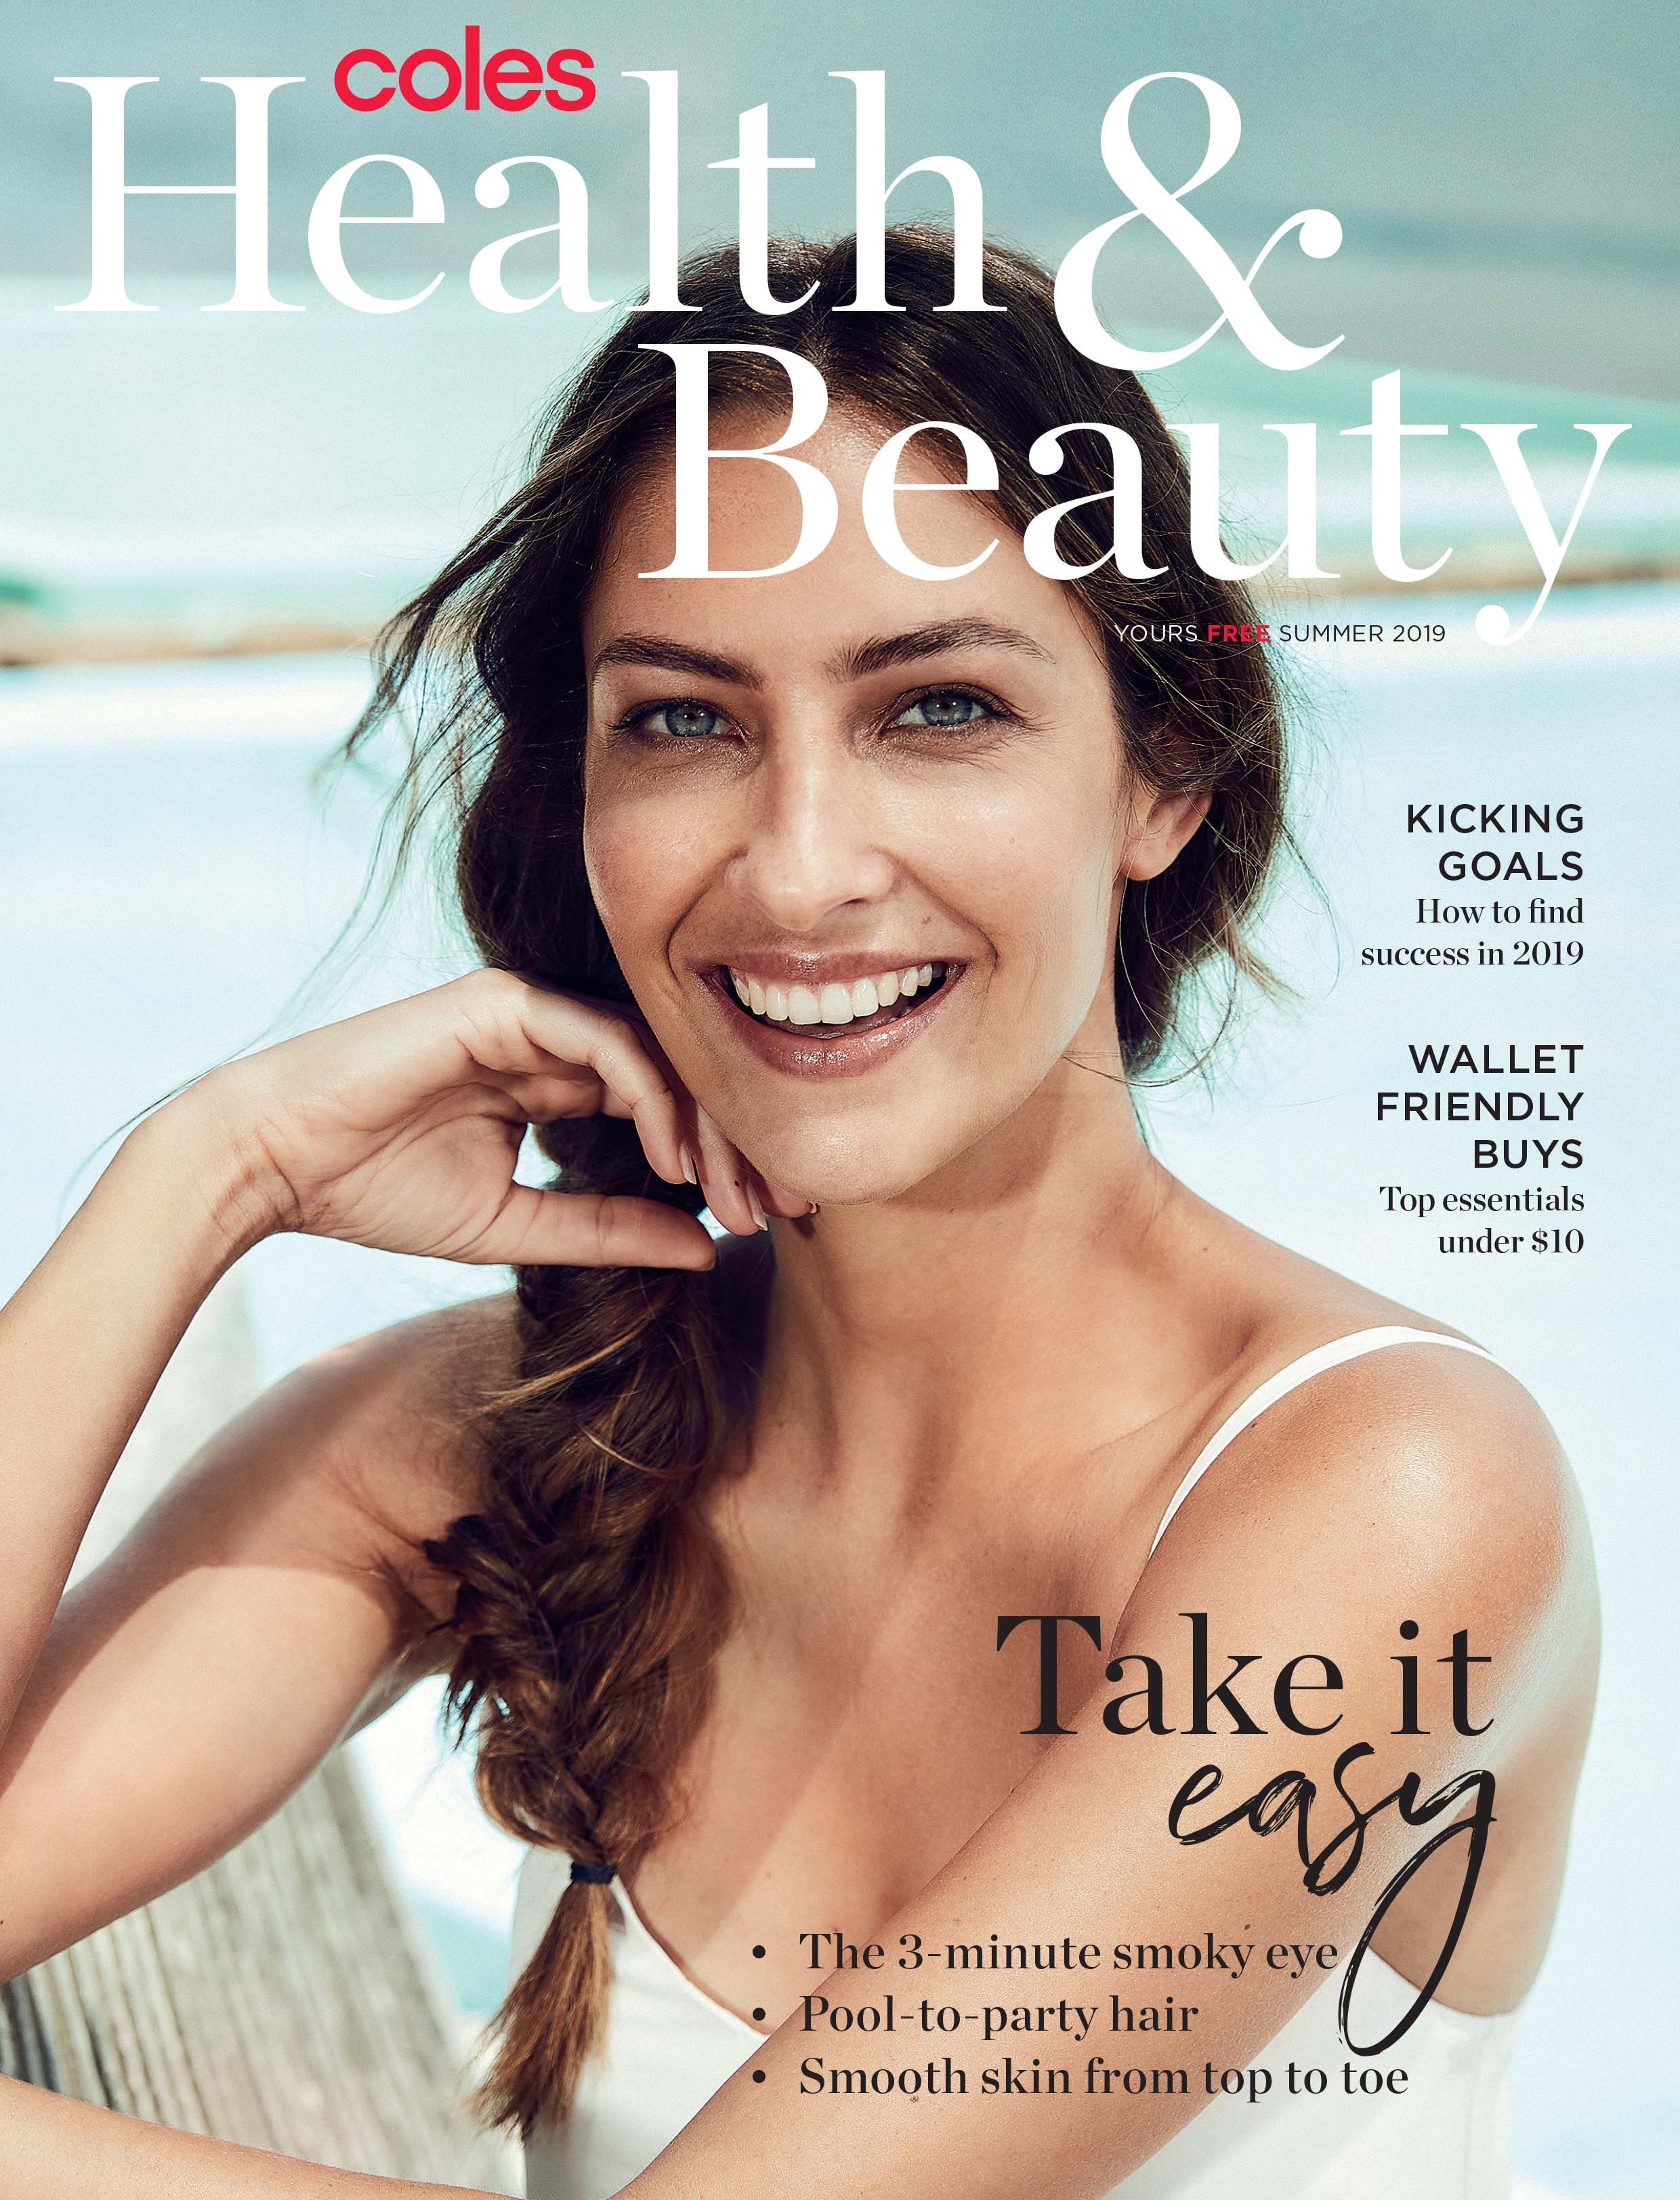 Boots reveal real cover star winner – 5pm Spa & Beauty